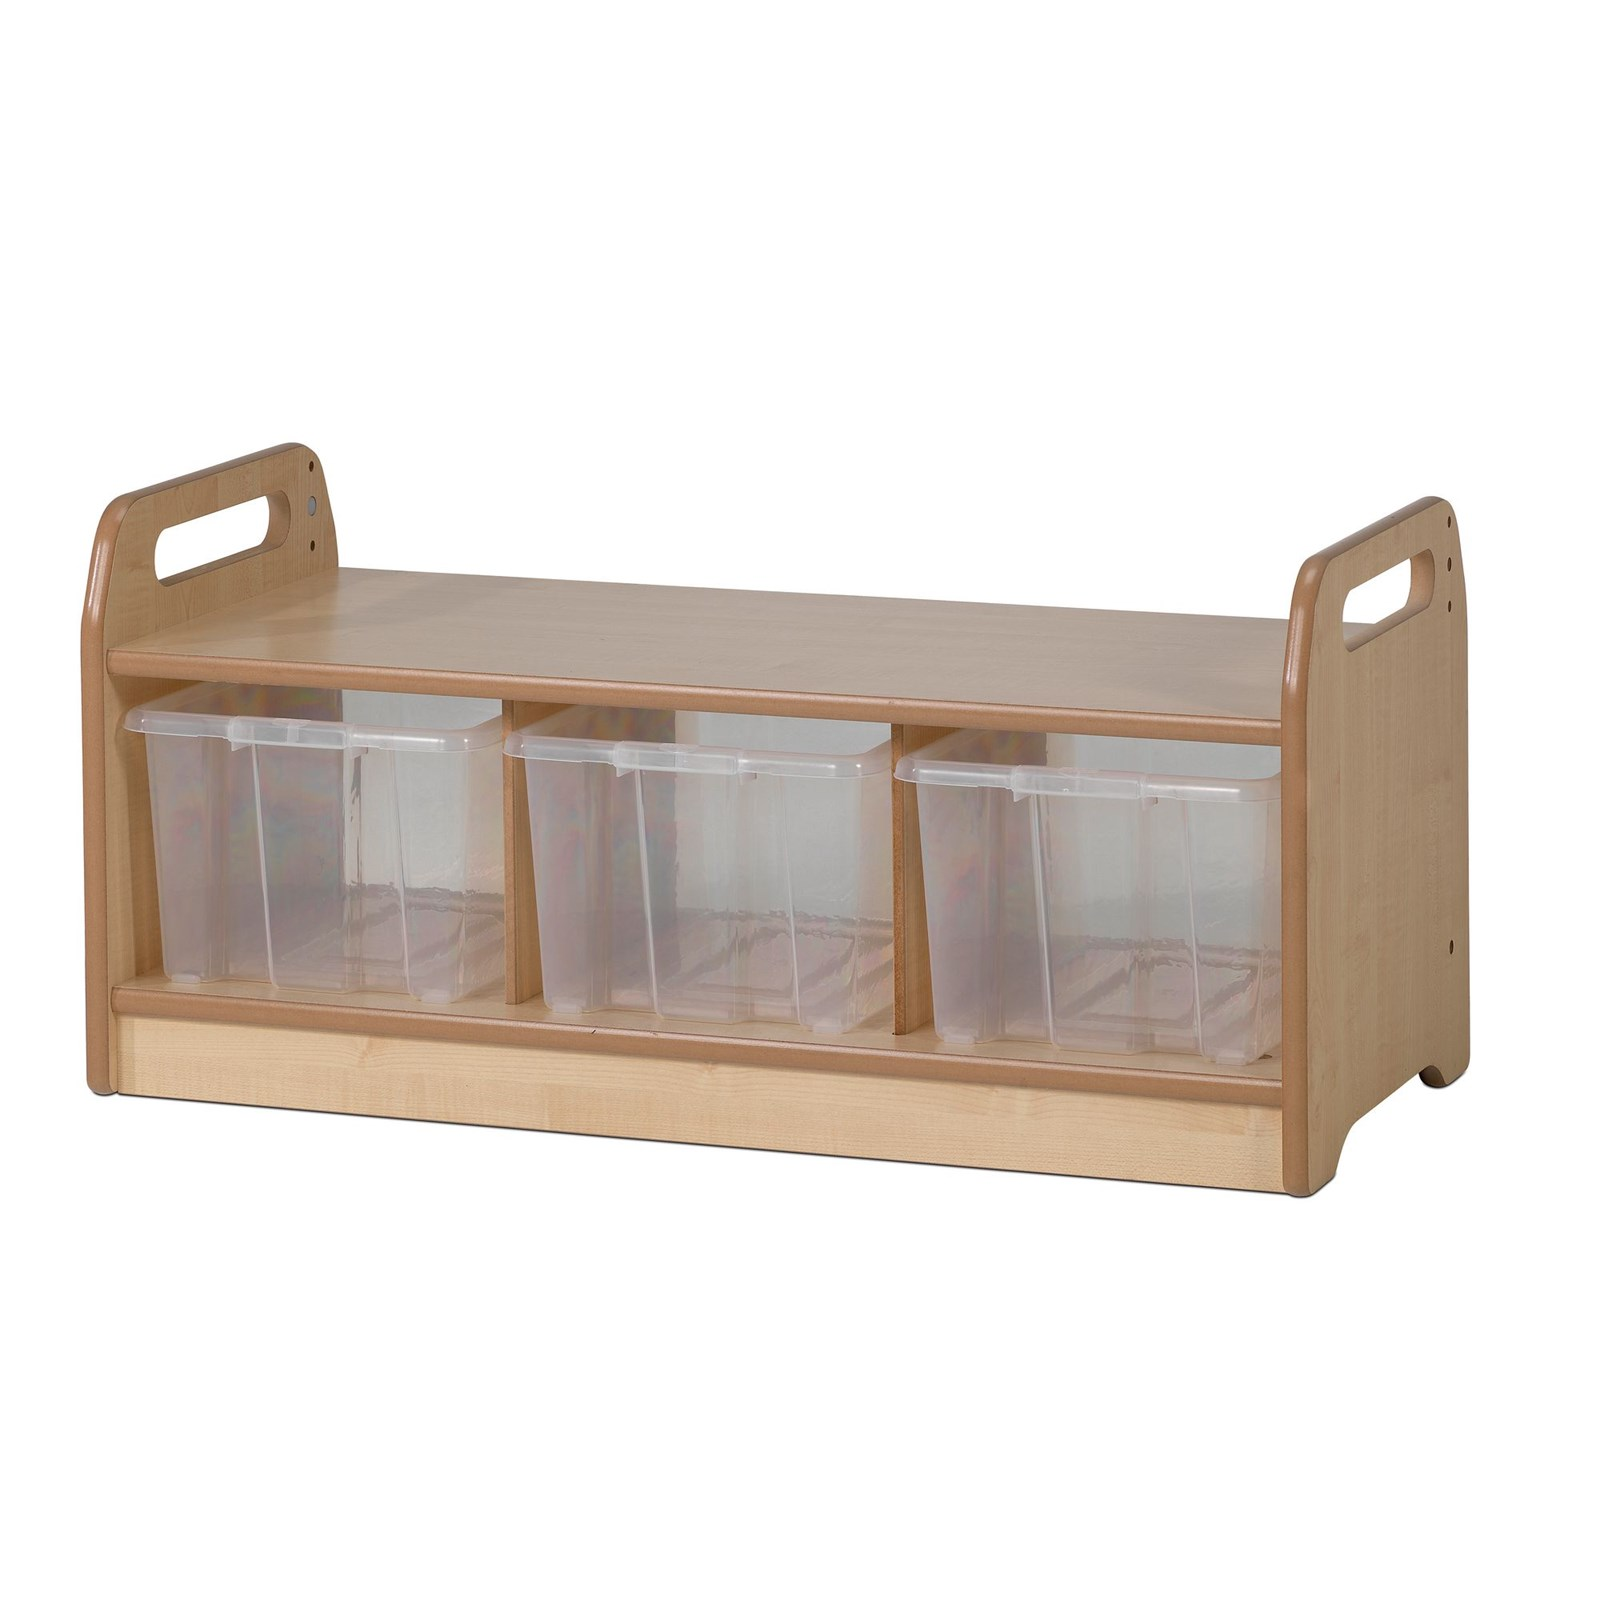 Playscapes Low Level Storage Bench with Clear Tubs